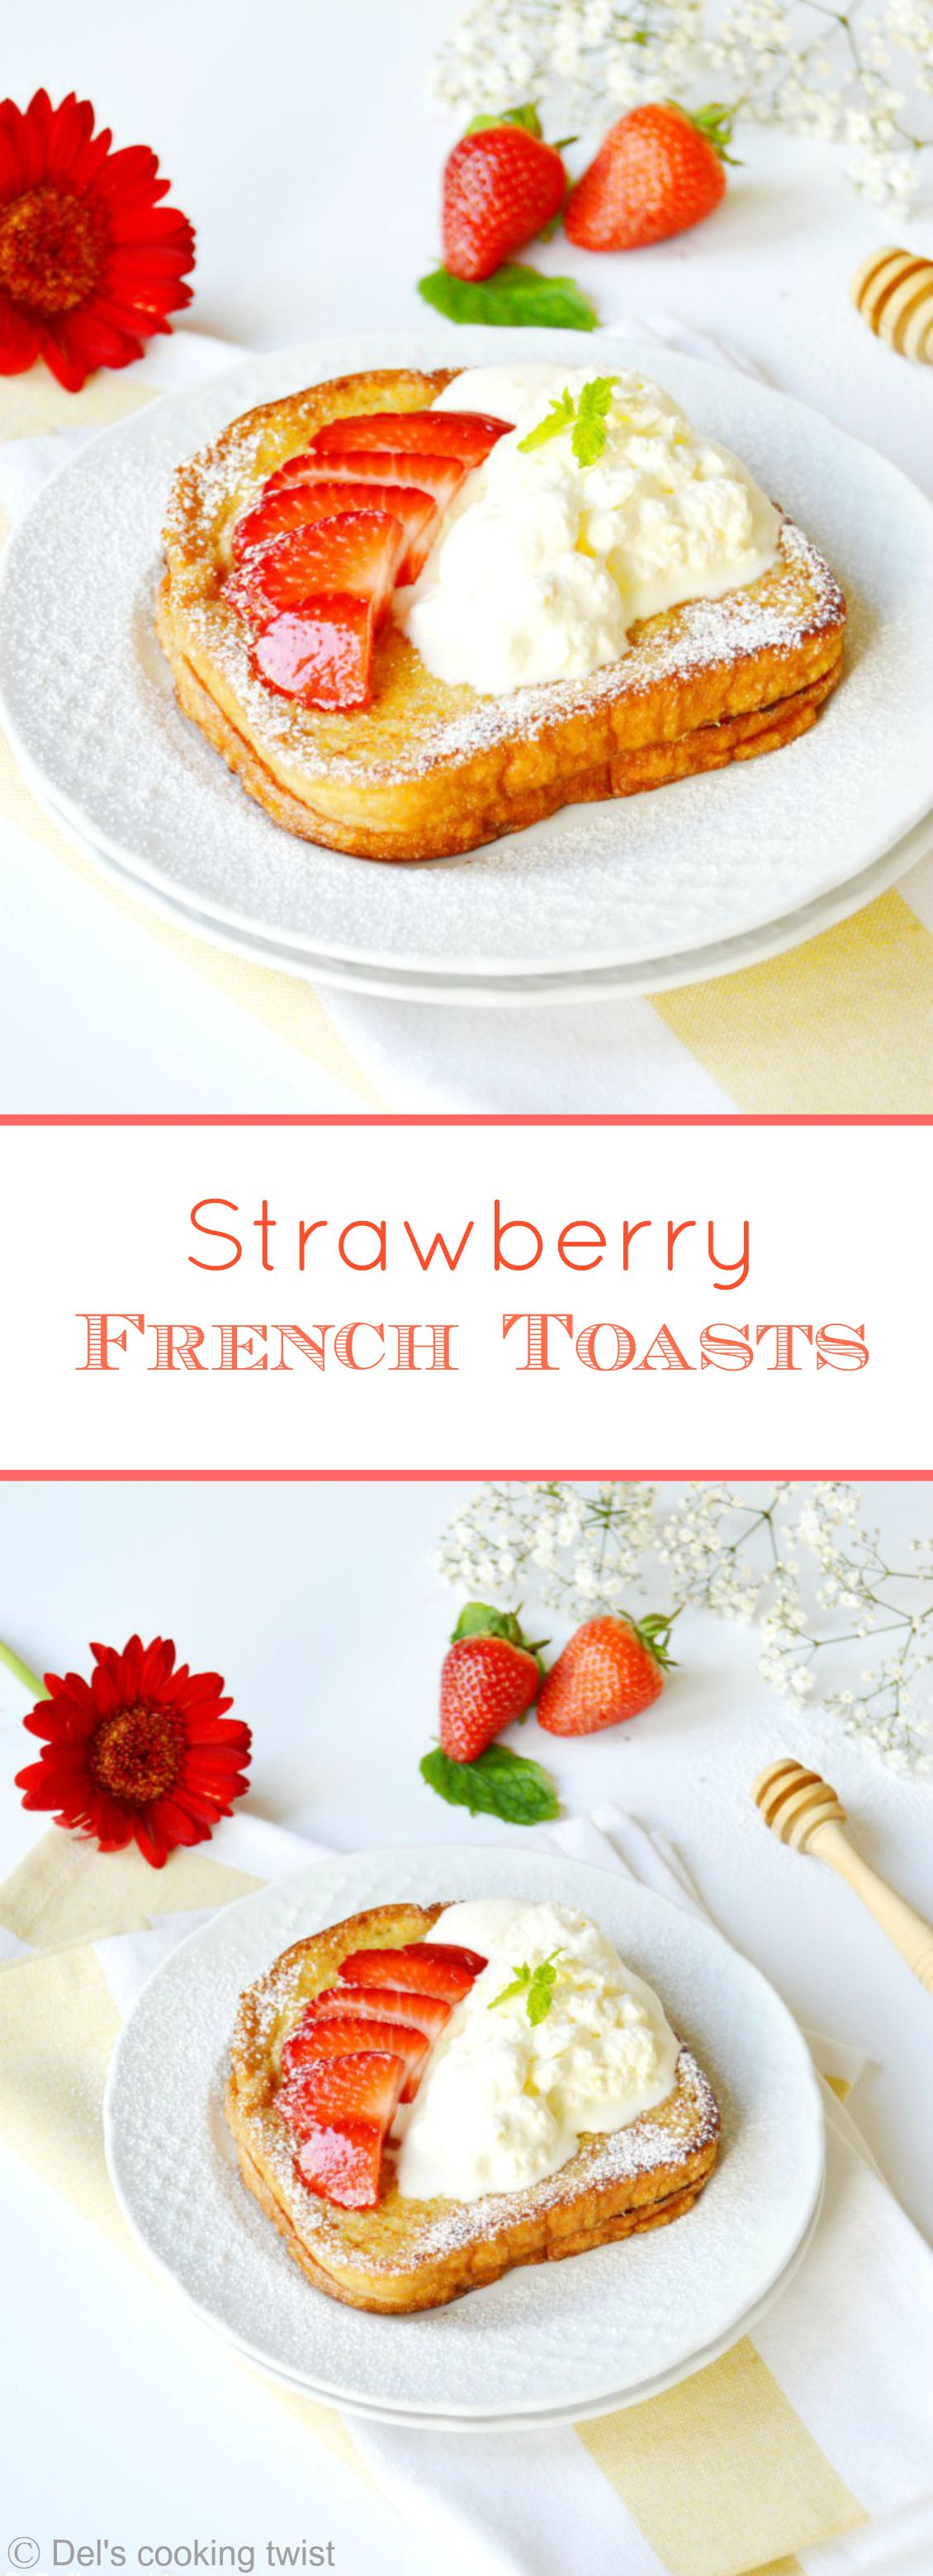 Fluffy and buttery French toasts, topped with fresh berries, whipped cream and a drizzle of maple syrup. | Del's cooking twist